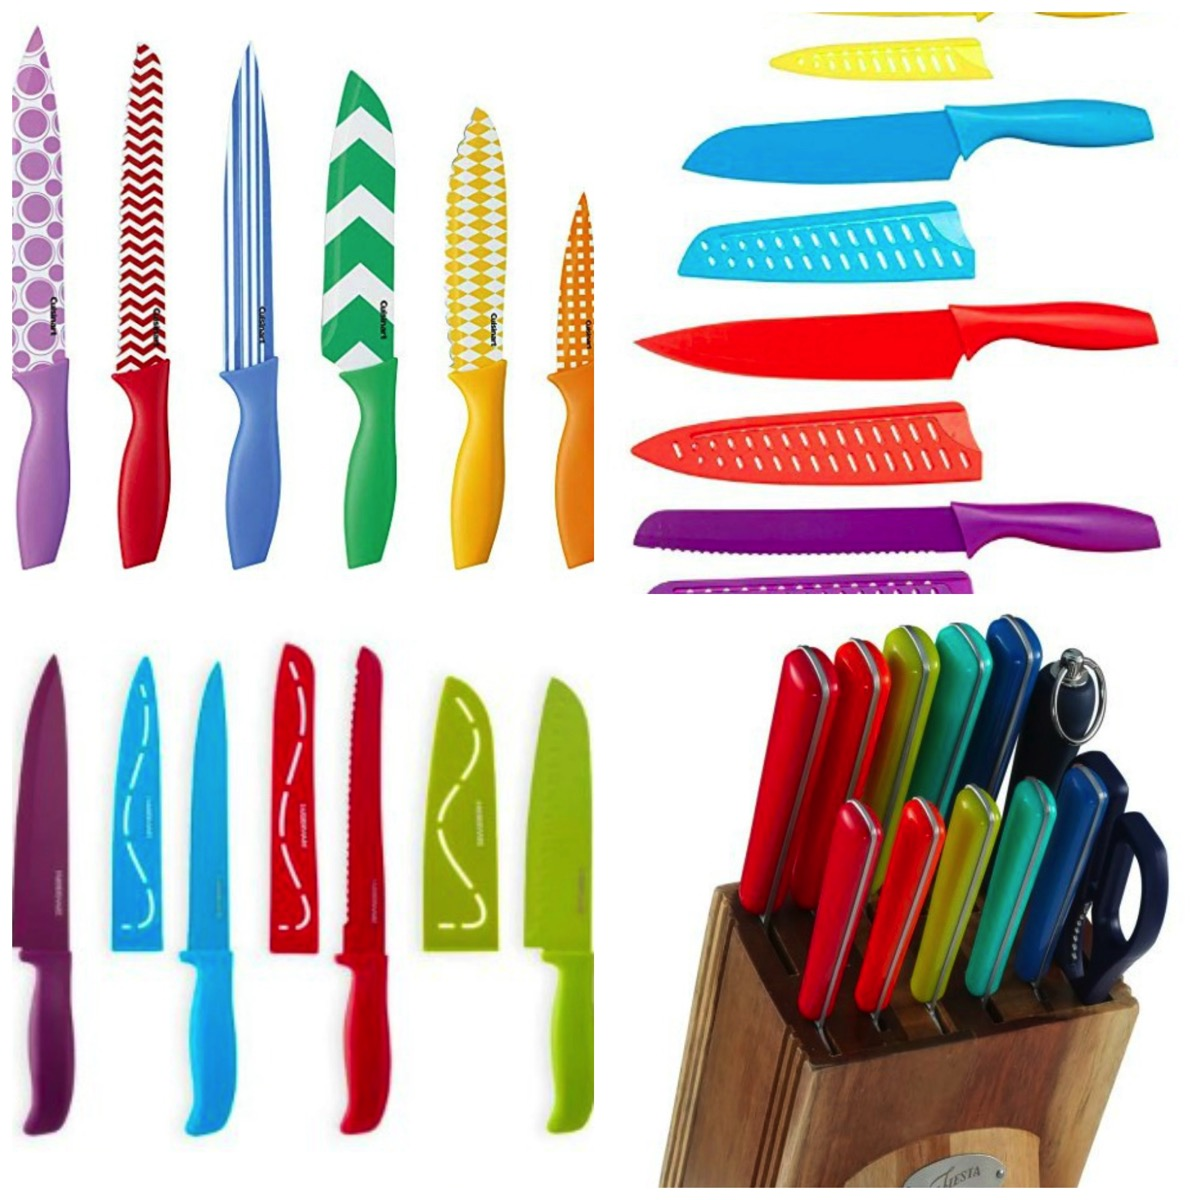 Vibrant and colorful rainbow kitchen knife sets for your home